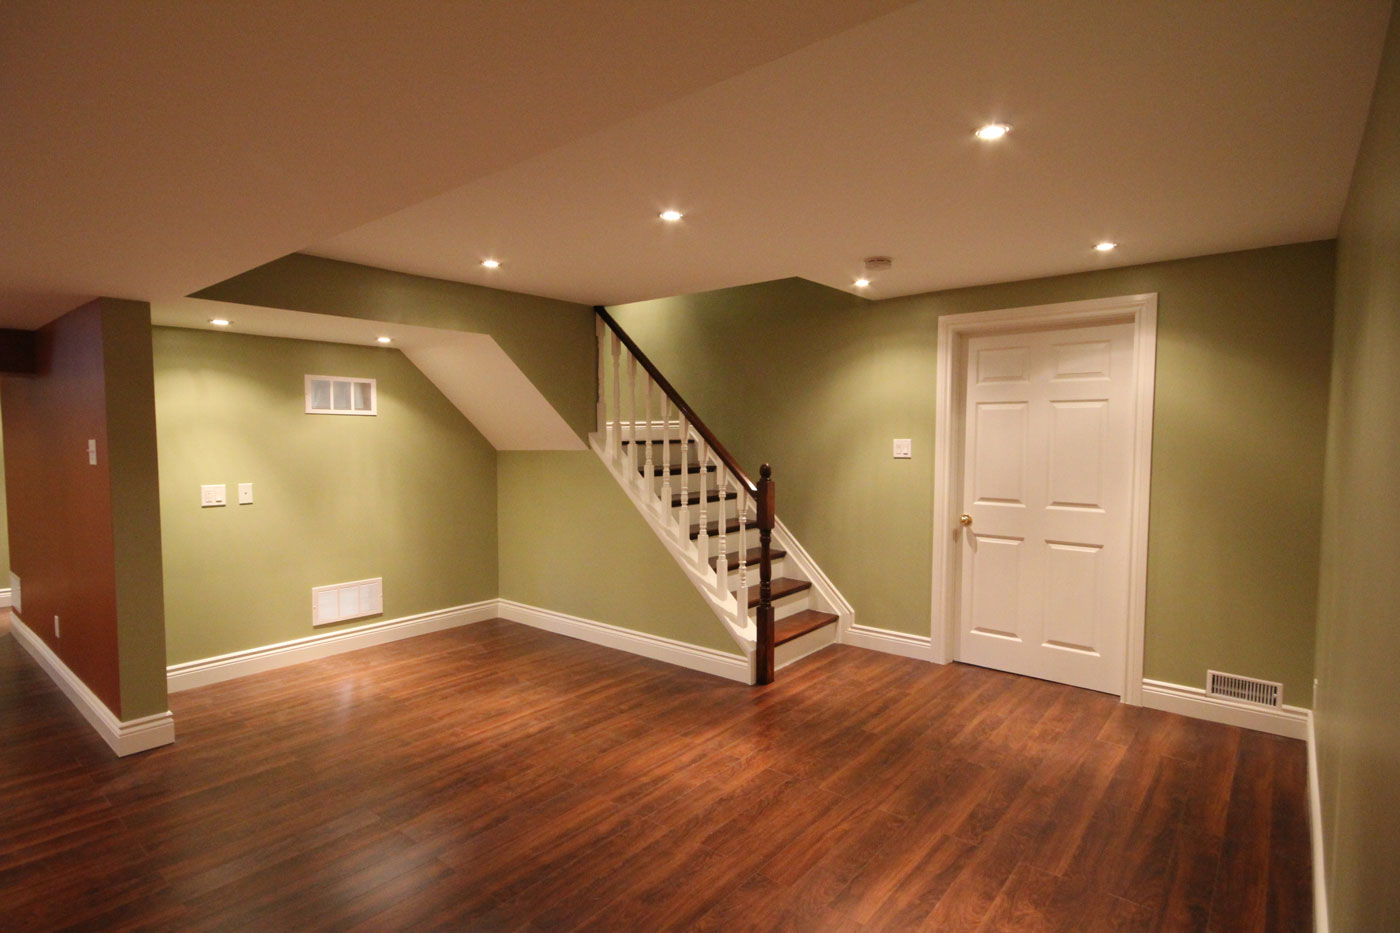 Basement sak construction and home improvement - Interior basement ...